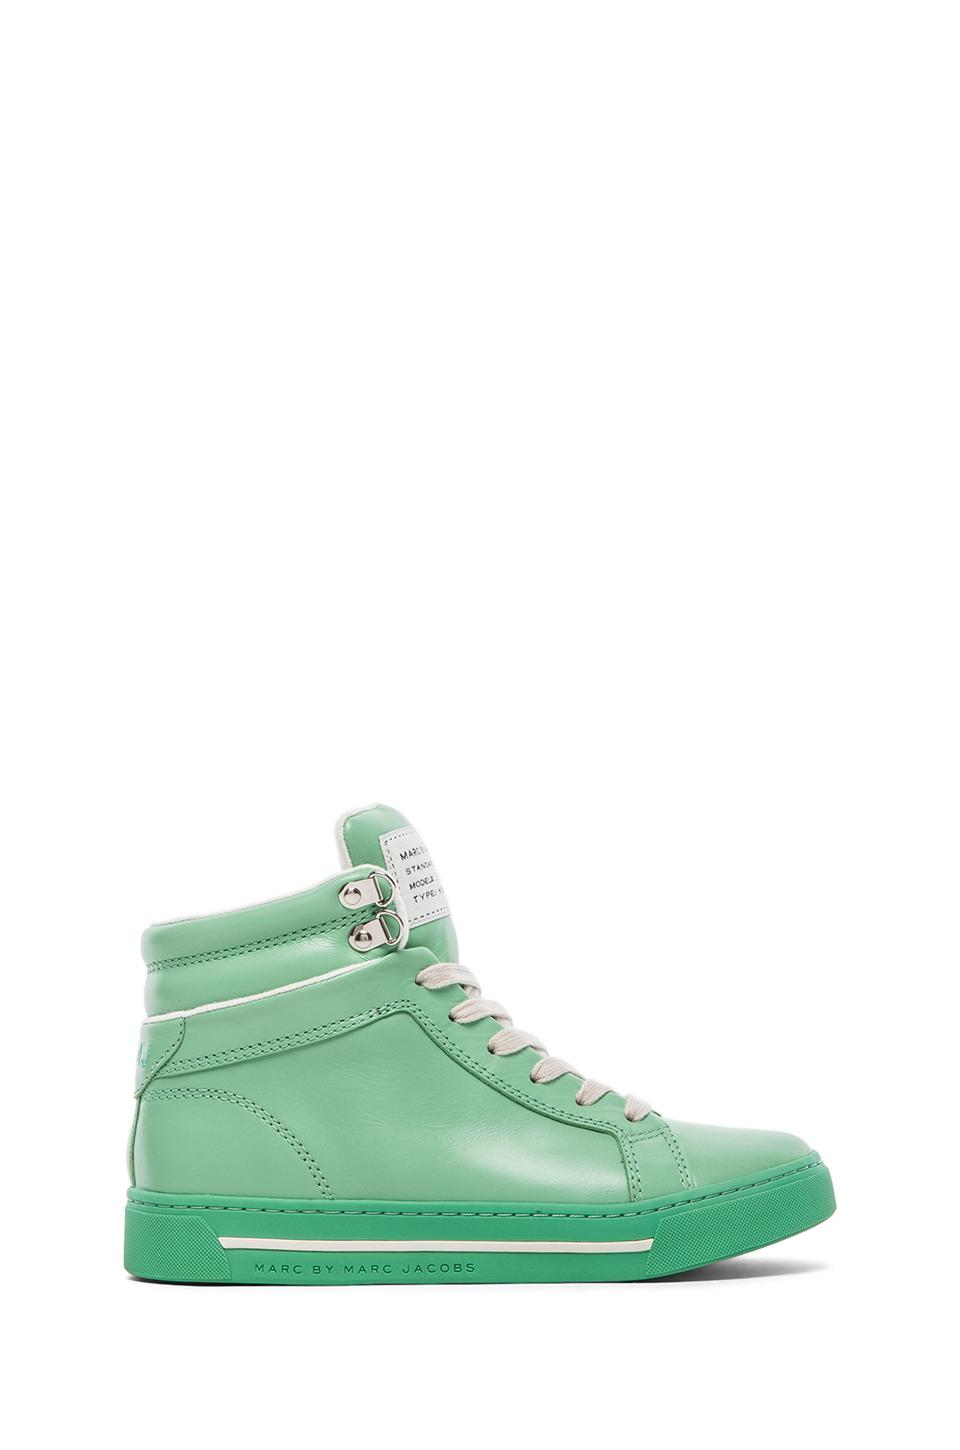 Marc by Marc Jacobs Cute Kicks Sneaker in Green